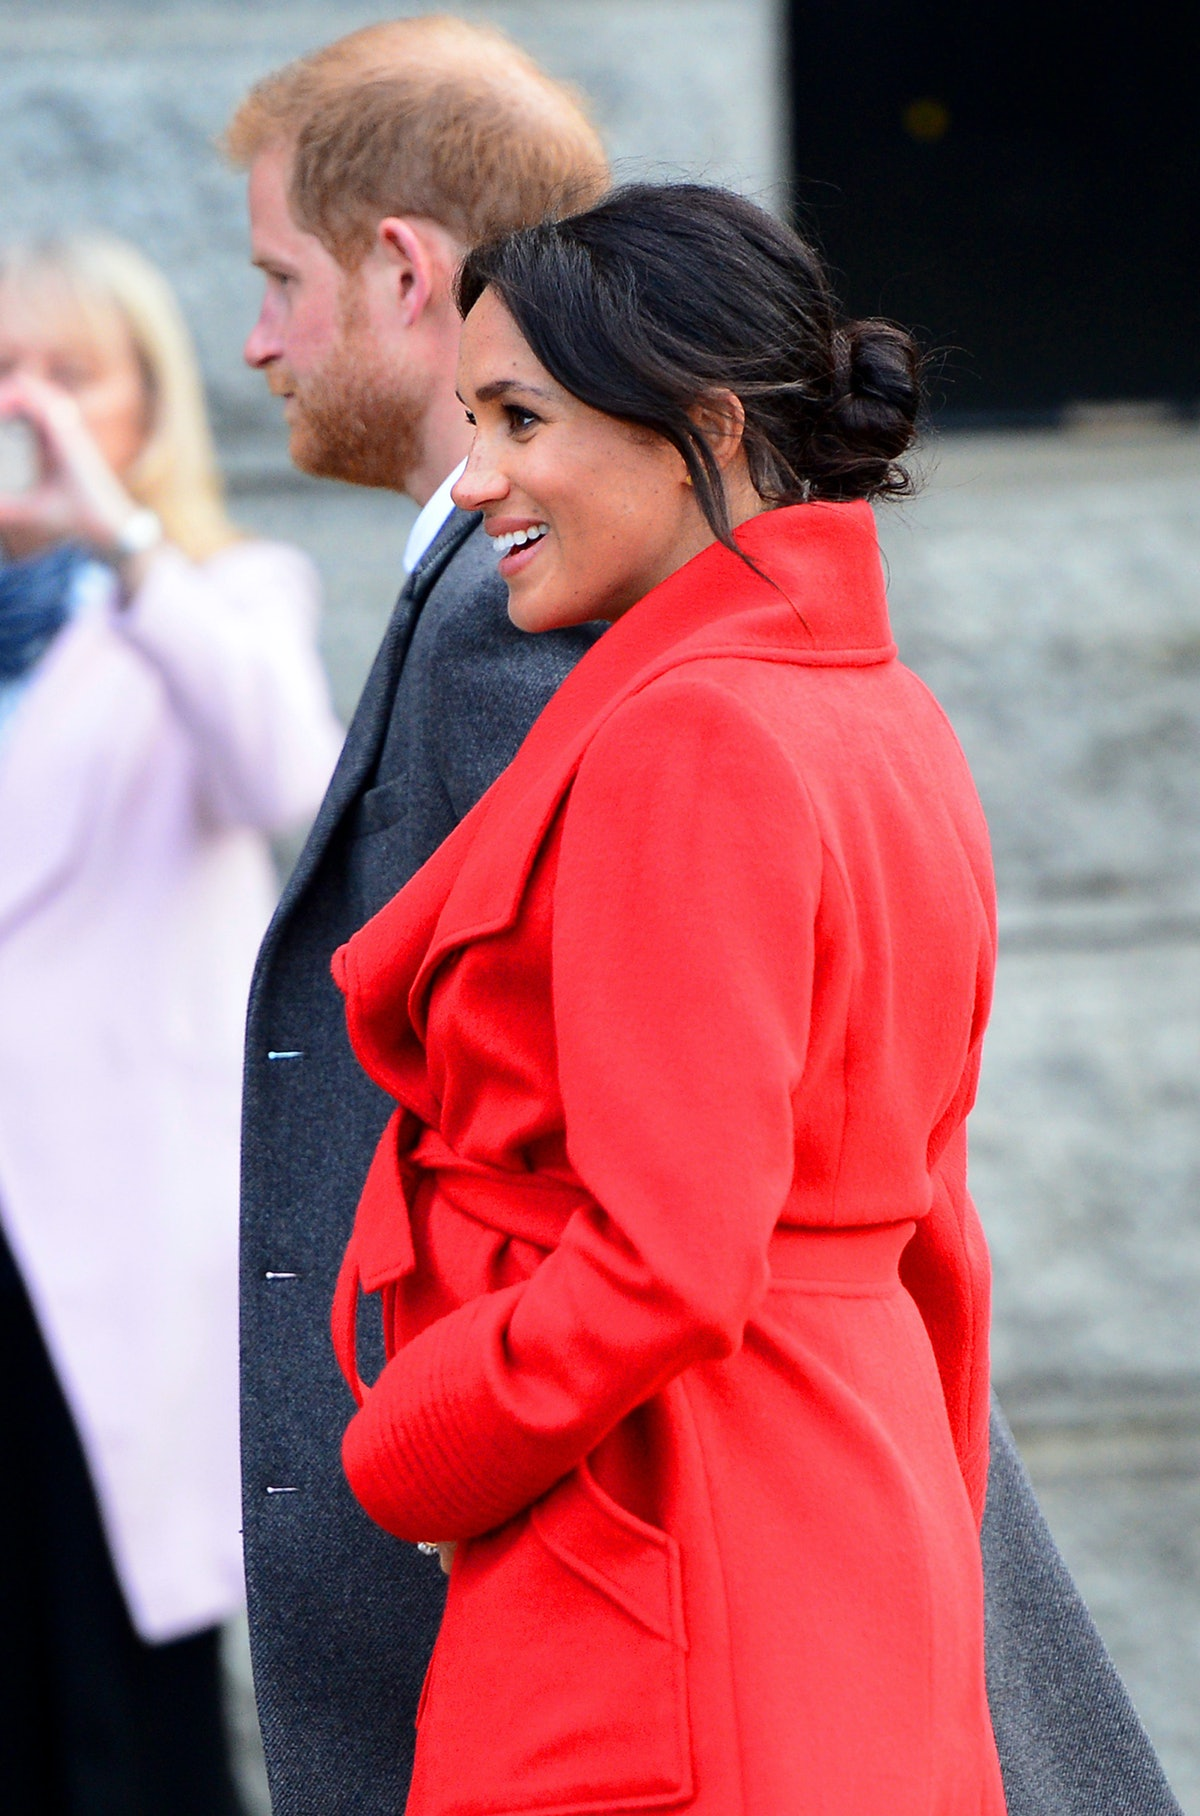 Meghan Markle's Red Winter Coat Looks Familiar Because She's Technically Worn It Before